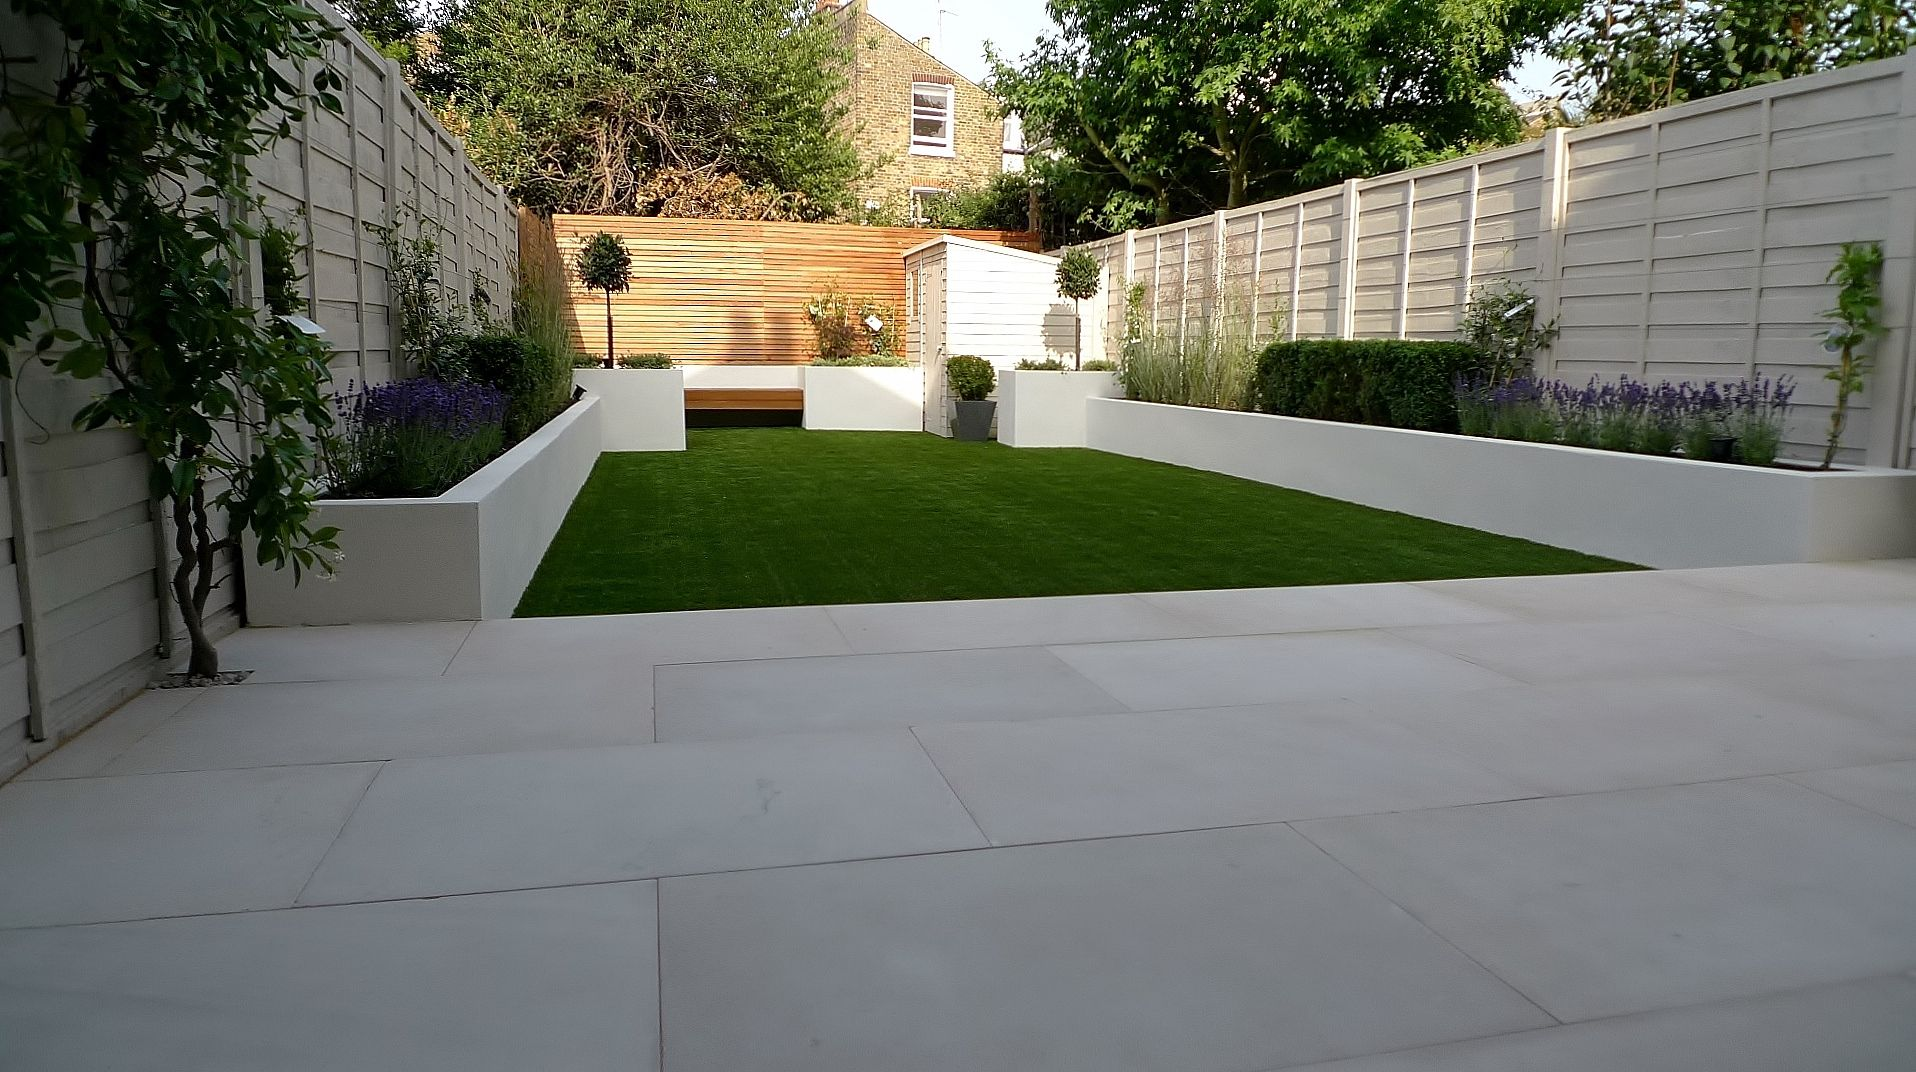 Modern Garden Design Ideas Uk Amazing Design Samples Pictures With - Contemporary garden ideas uk